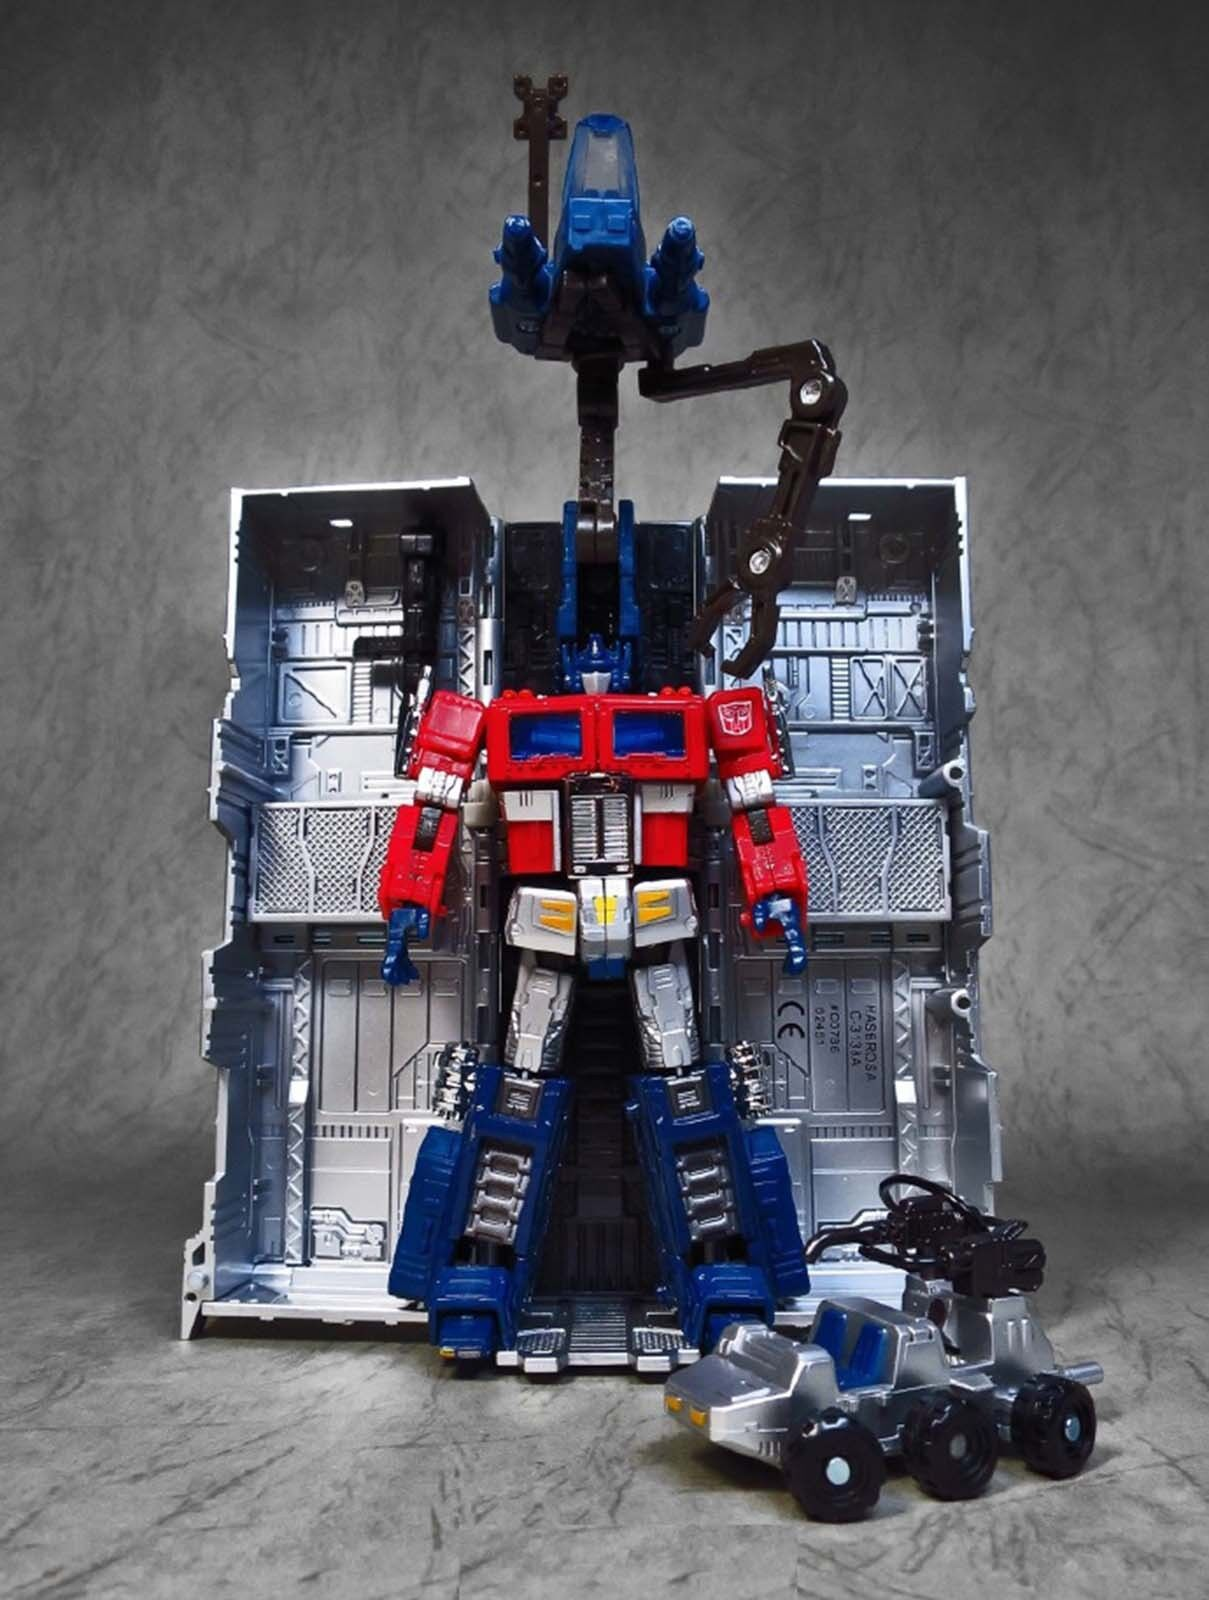 Transformers Platinum Edition OPTIMUS PRIME Year Of The Rooster Gift Figure